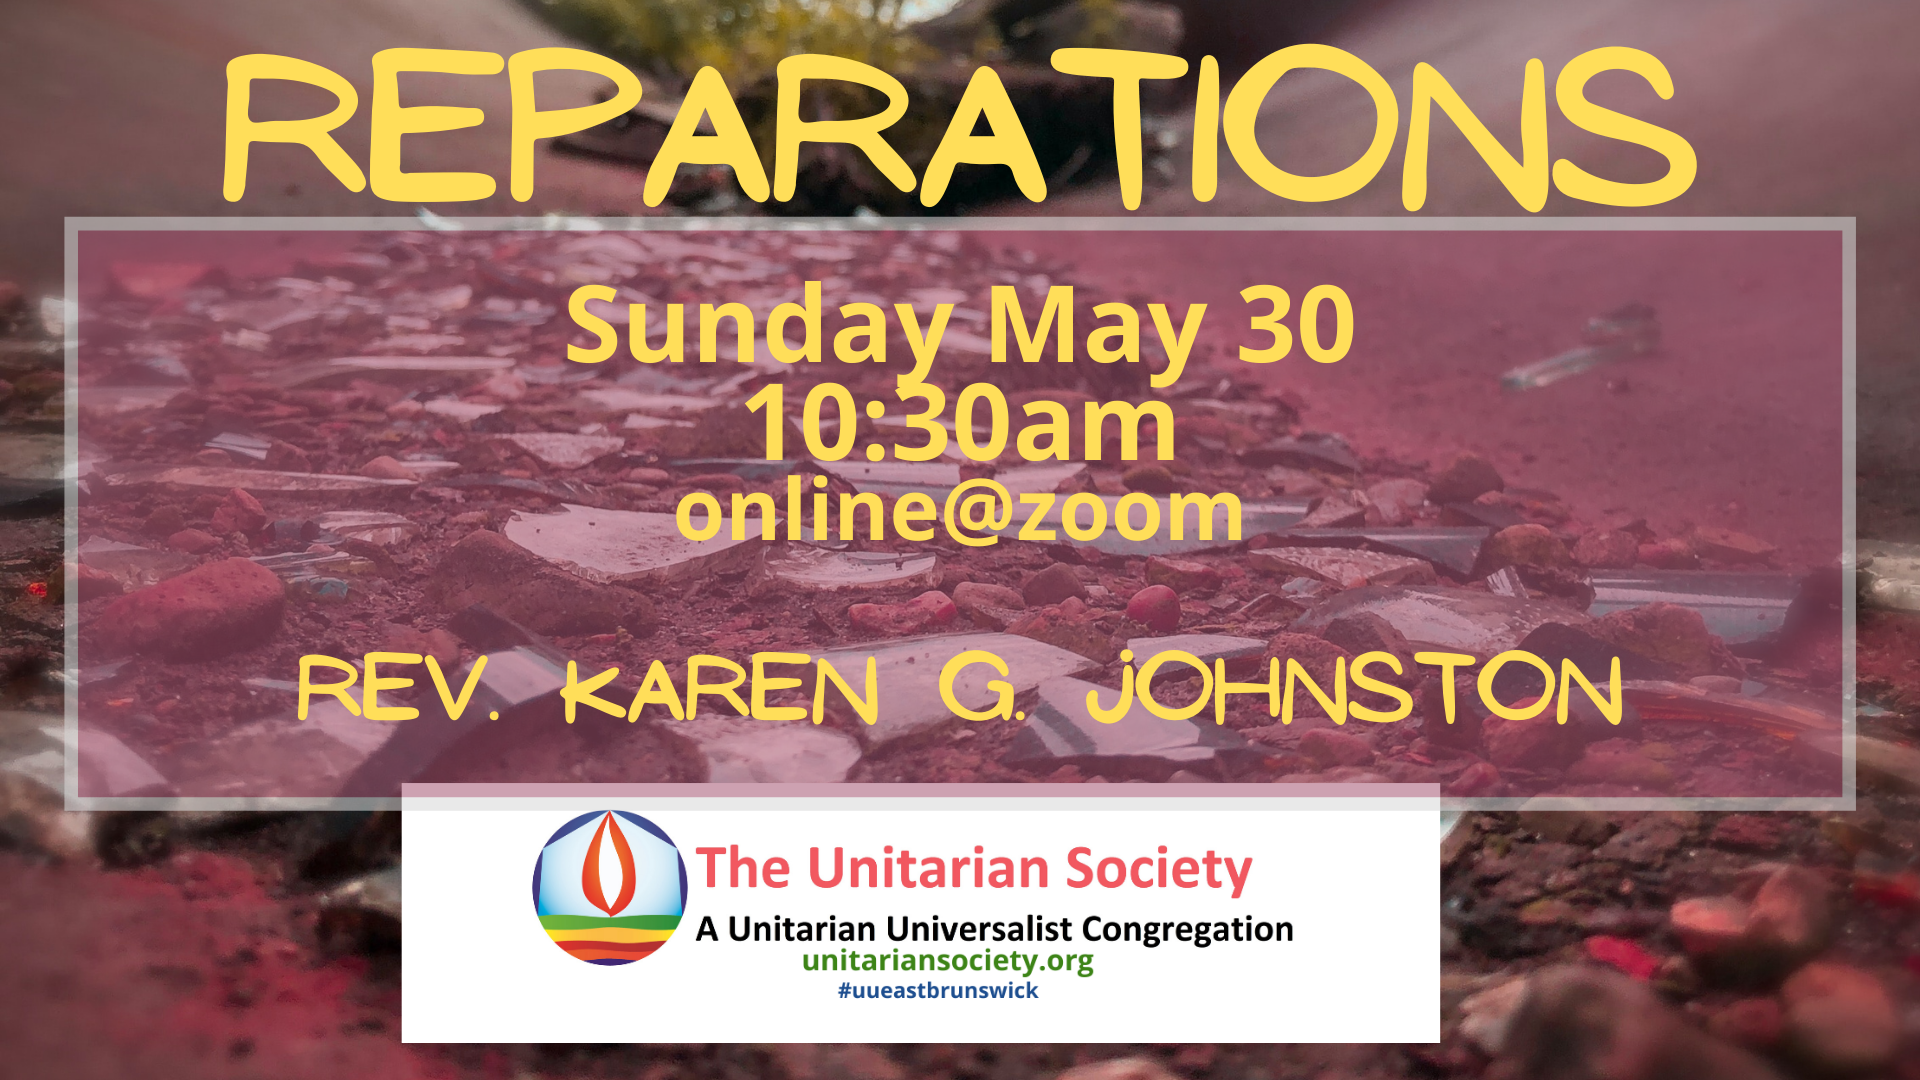 Sunday Service, May 30, 2021 @10:30AM — Reparations